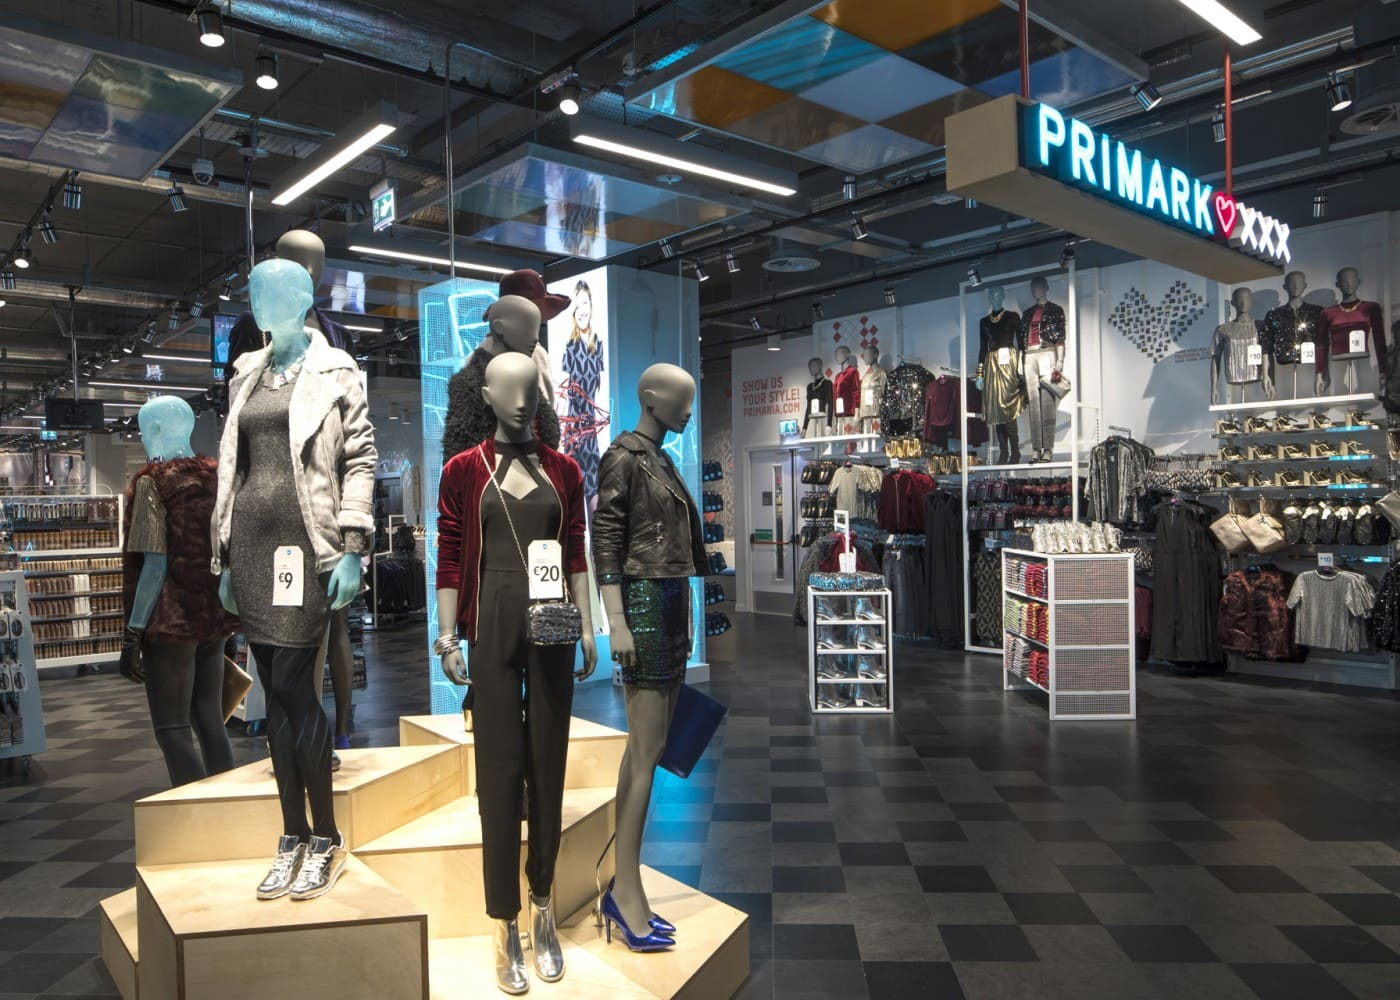 retail lighting design: Primark Amsterdam mannequins and store section